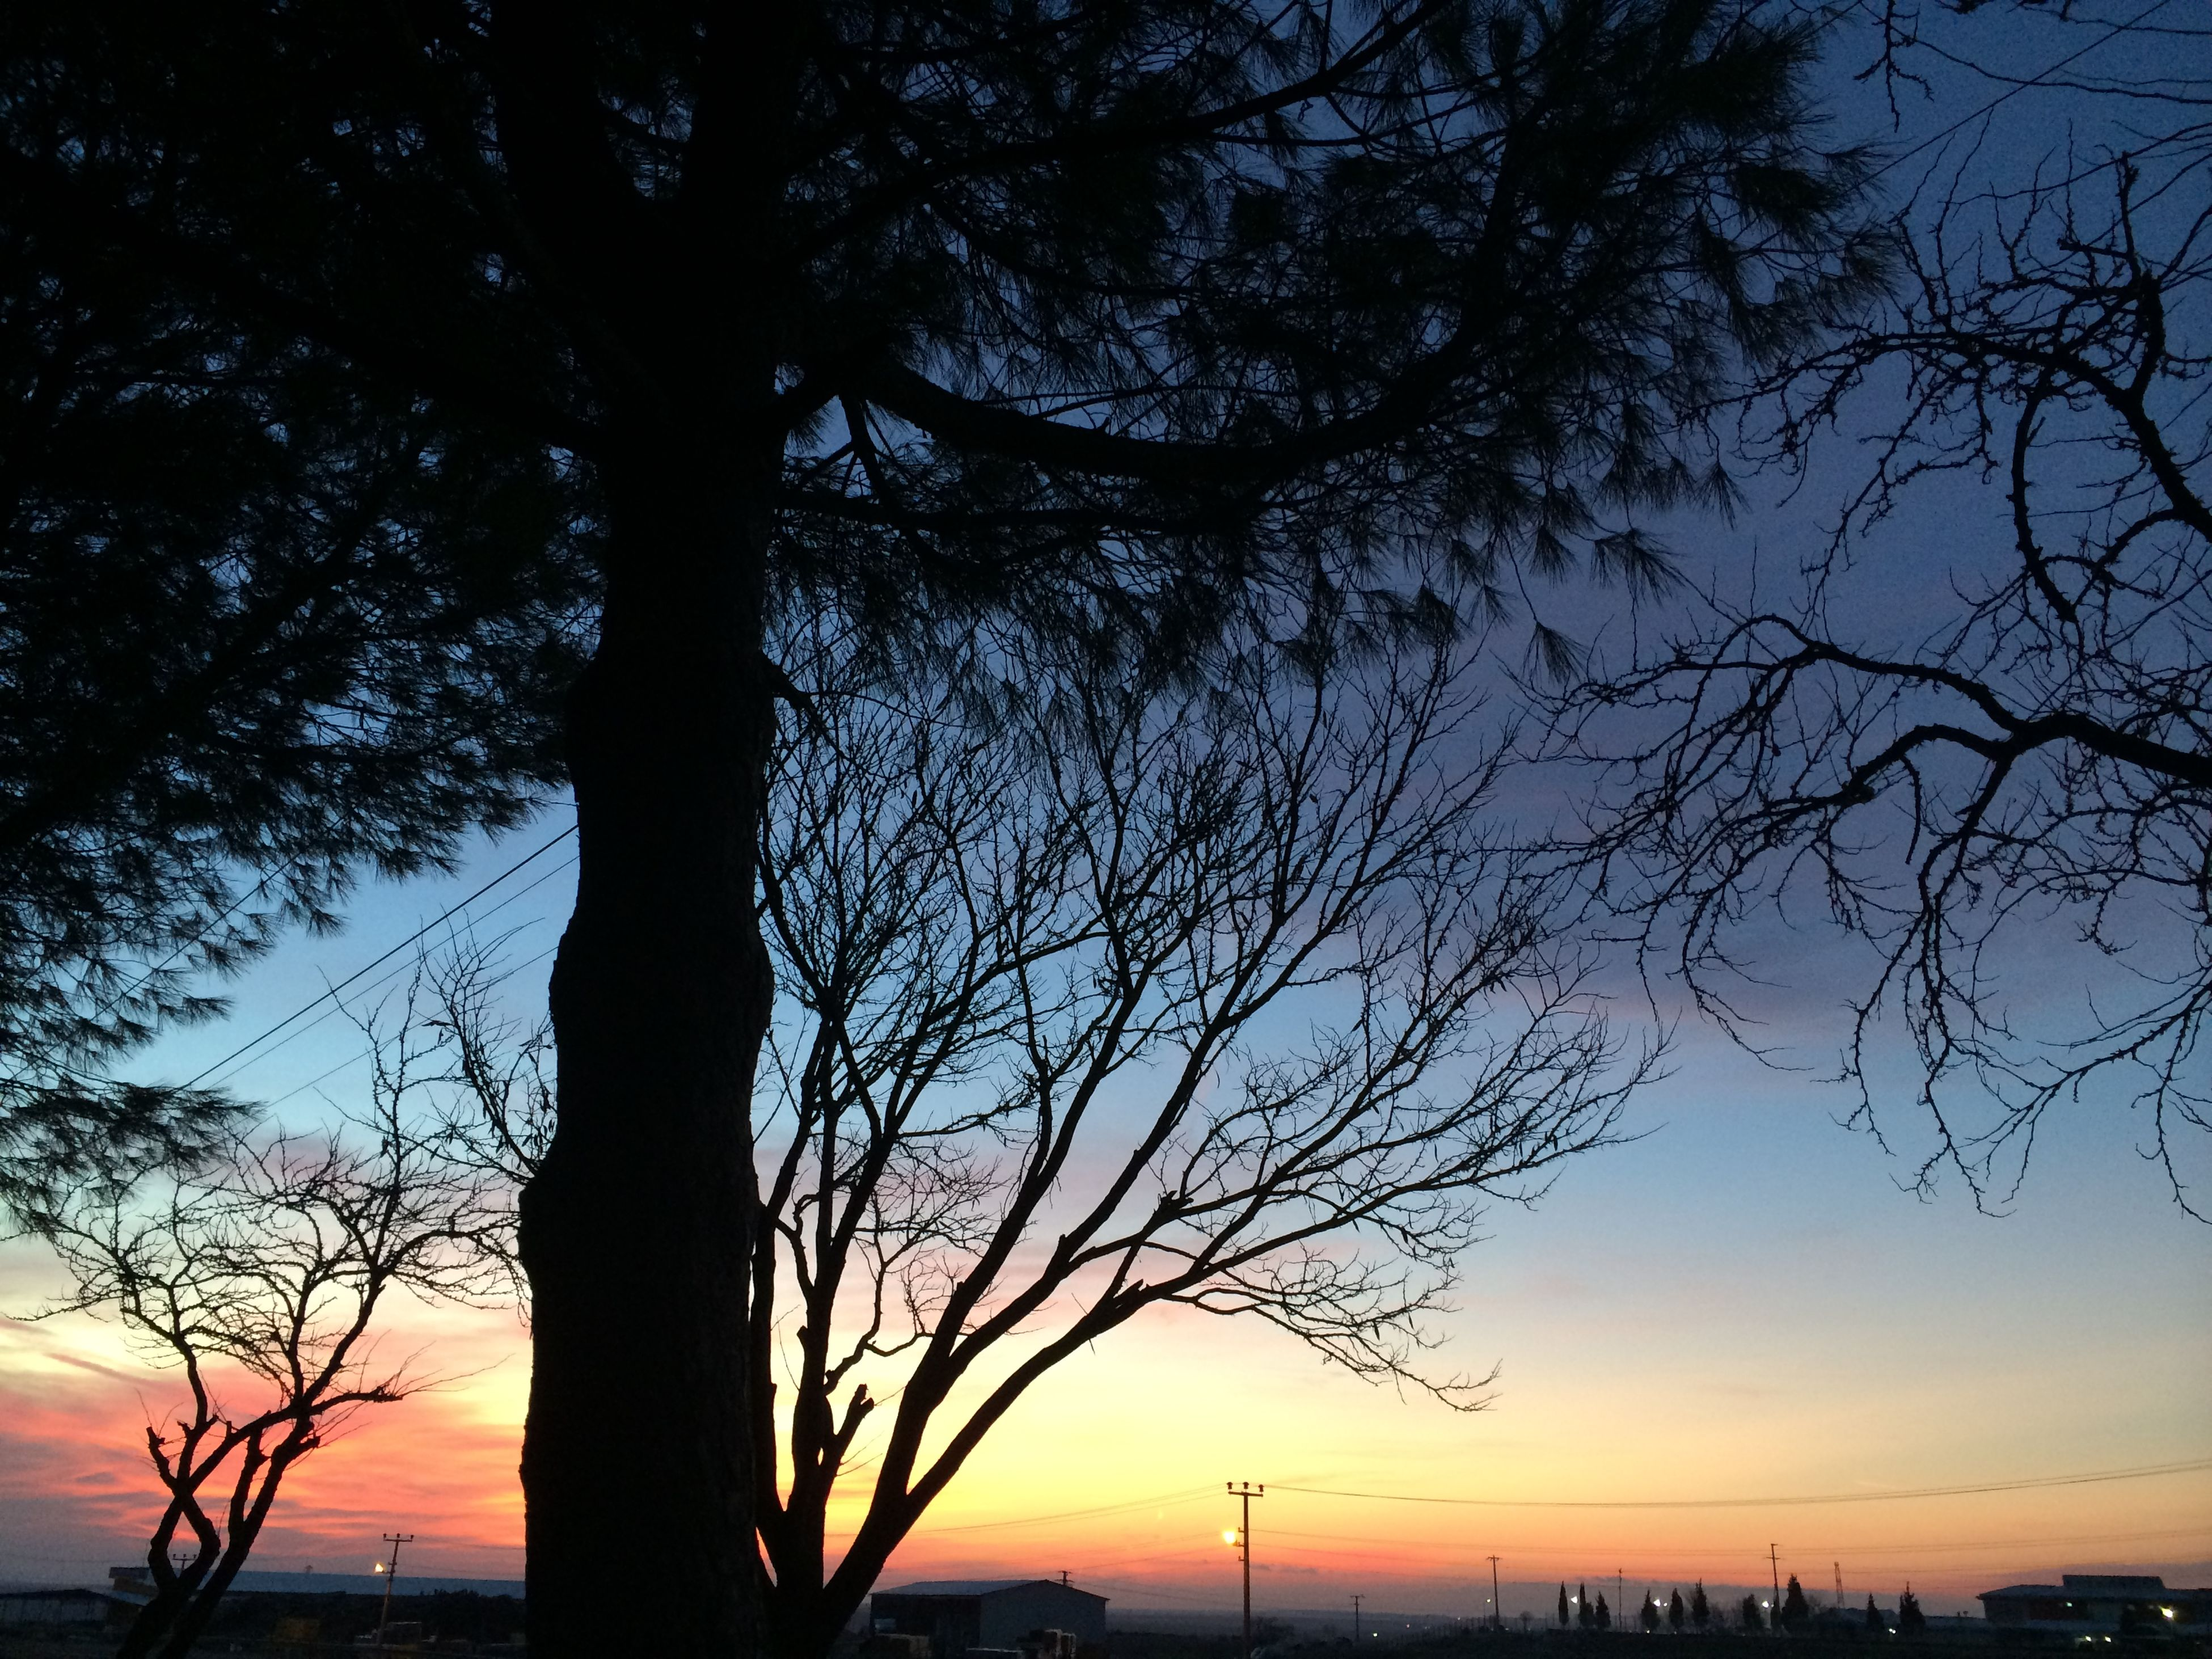 silhouette, sunset, tree, tranquil scene, branch, scenics, tranquility, tree trunk, beauty in nature, growth, nature, orange color, sky, outdoors, cloud, outline, majestic, tall, vibrant color, non-urban scene, no people, solitude, remote, moody sky